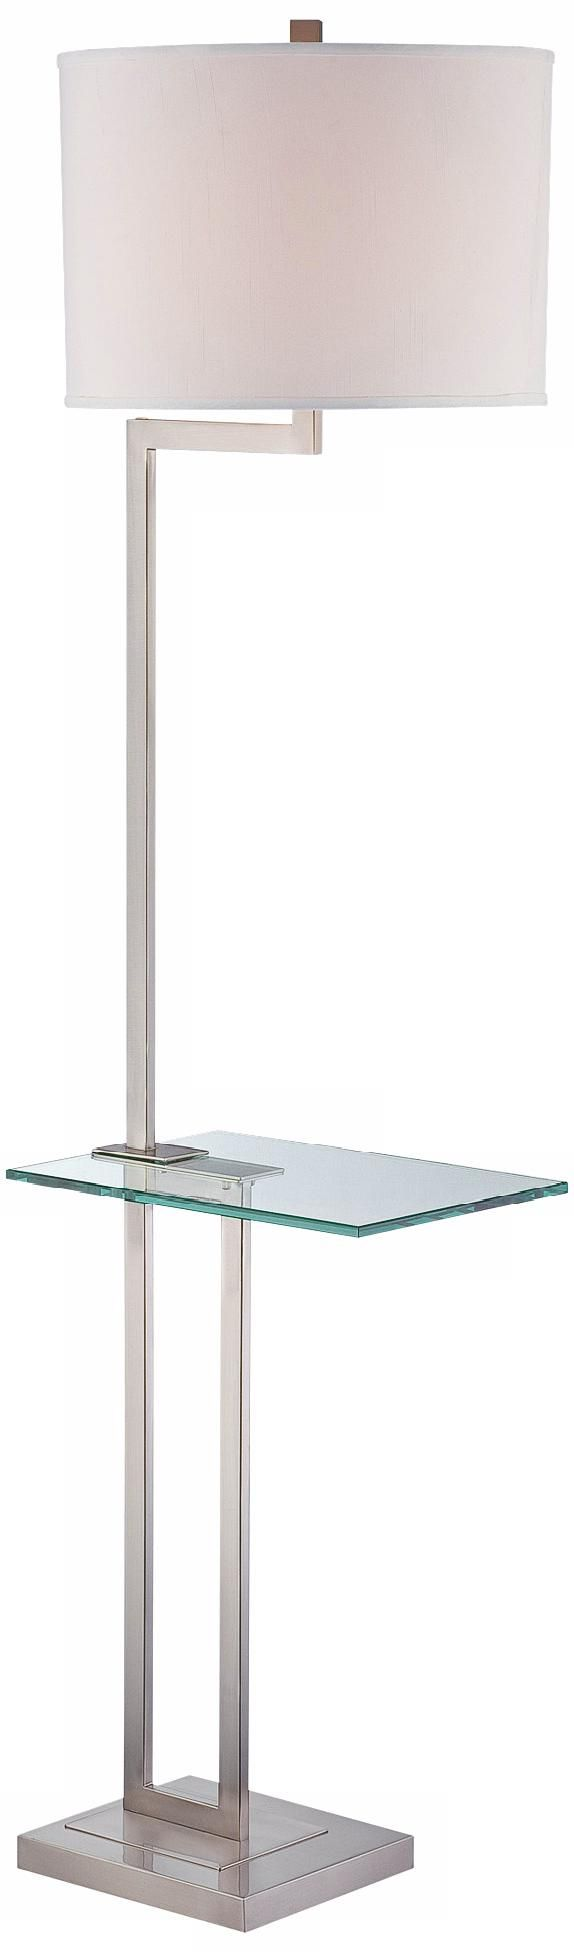 Great Polished Steel Floor Lamp With Glass Tray Table